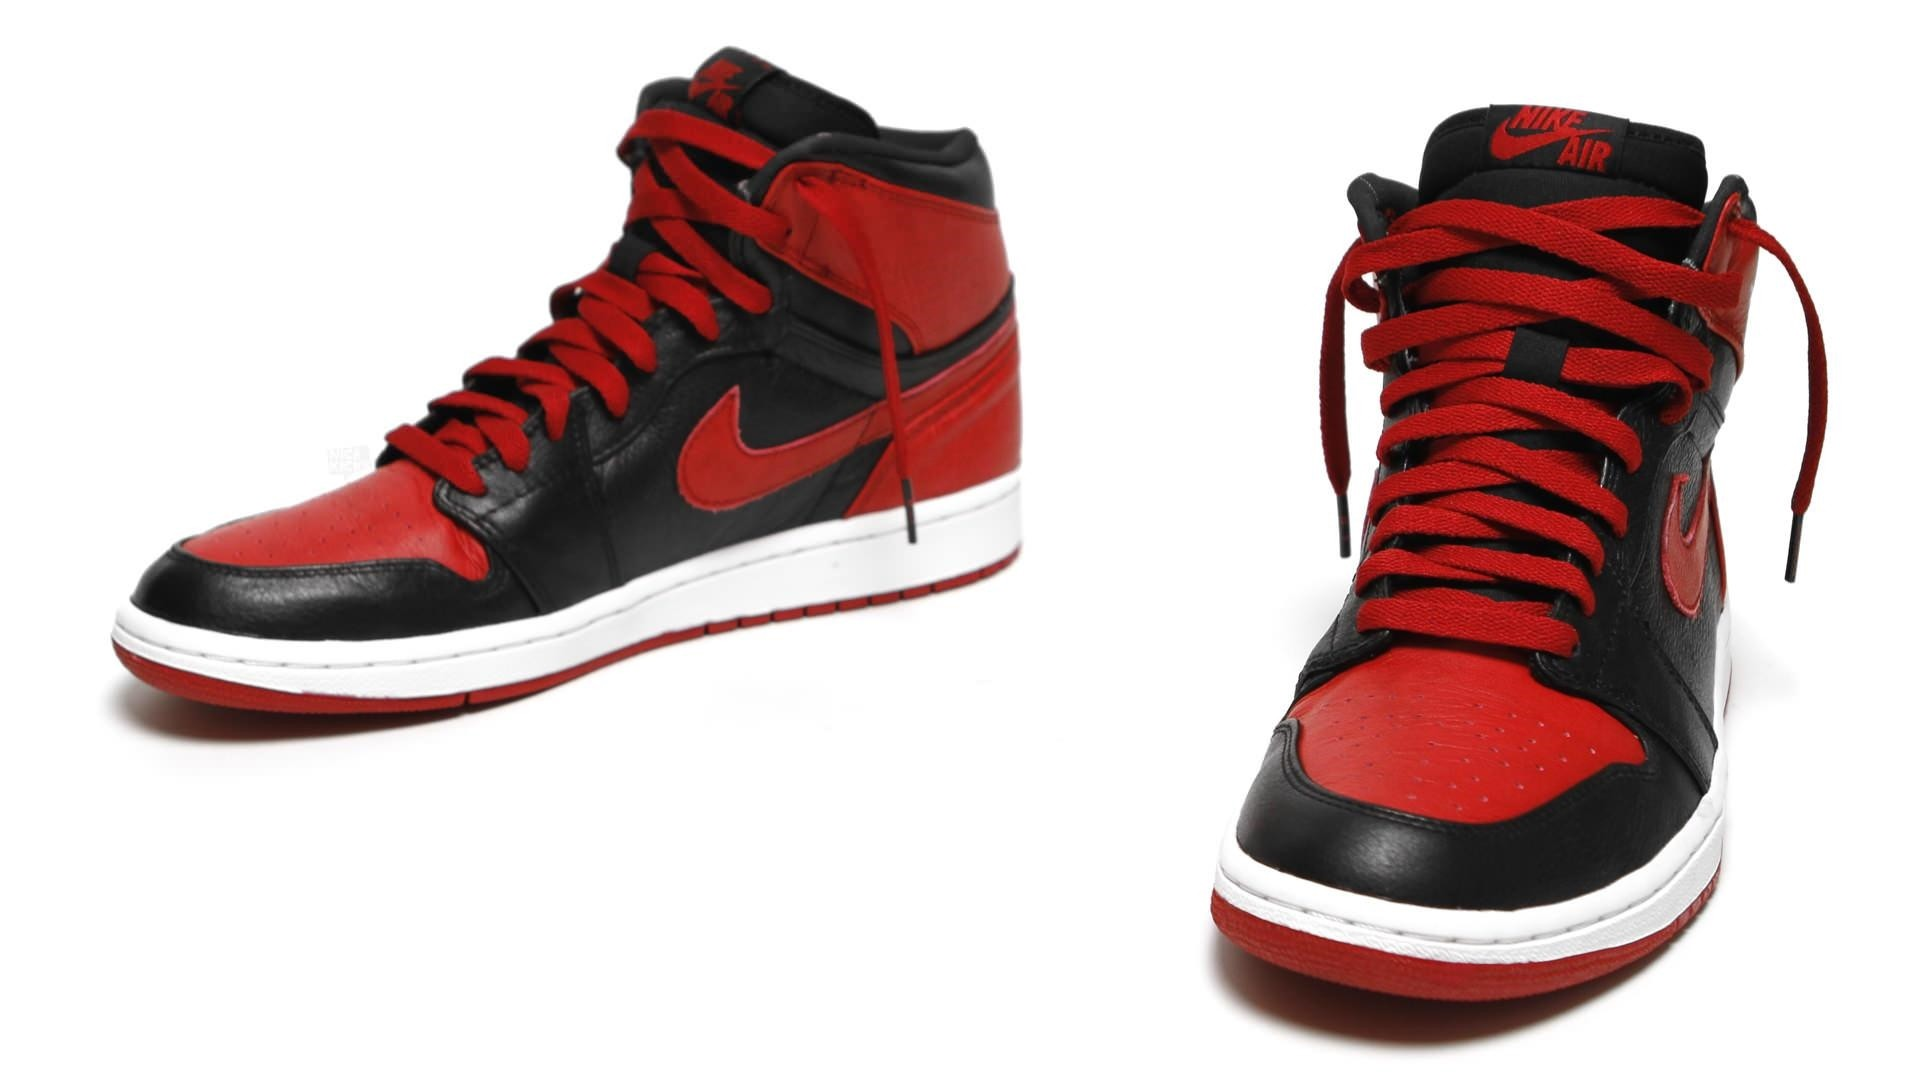 Jordan 1 Full HD Wallpaper